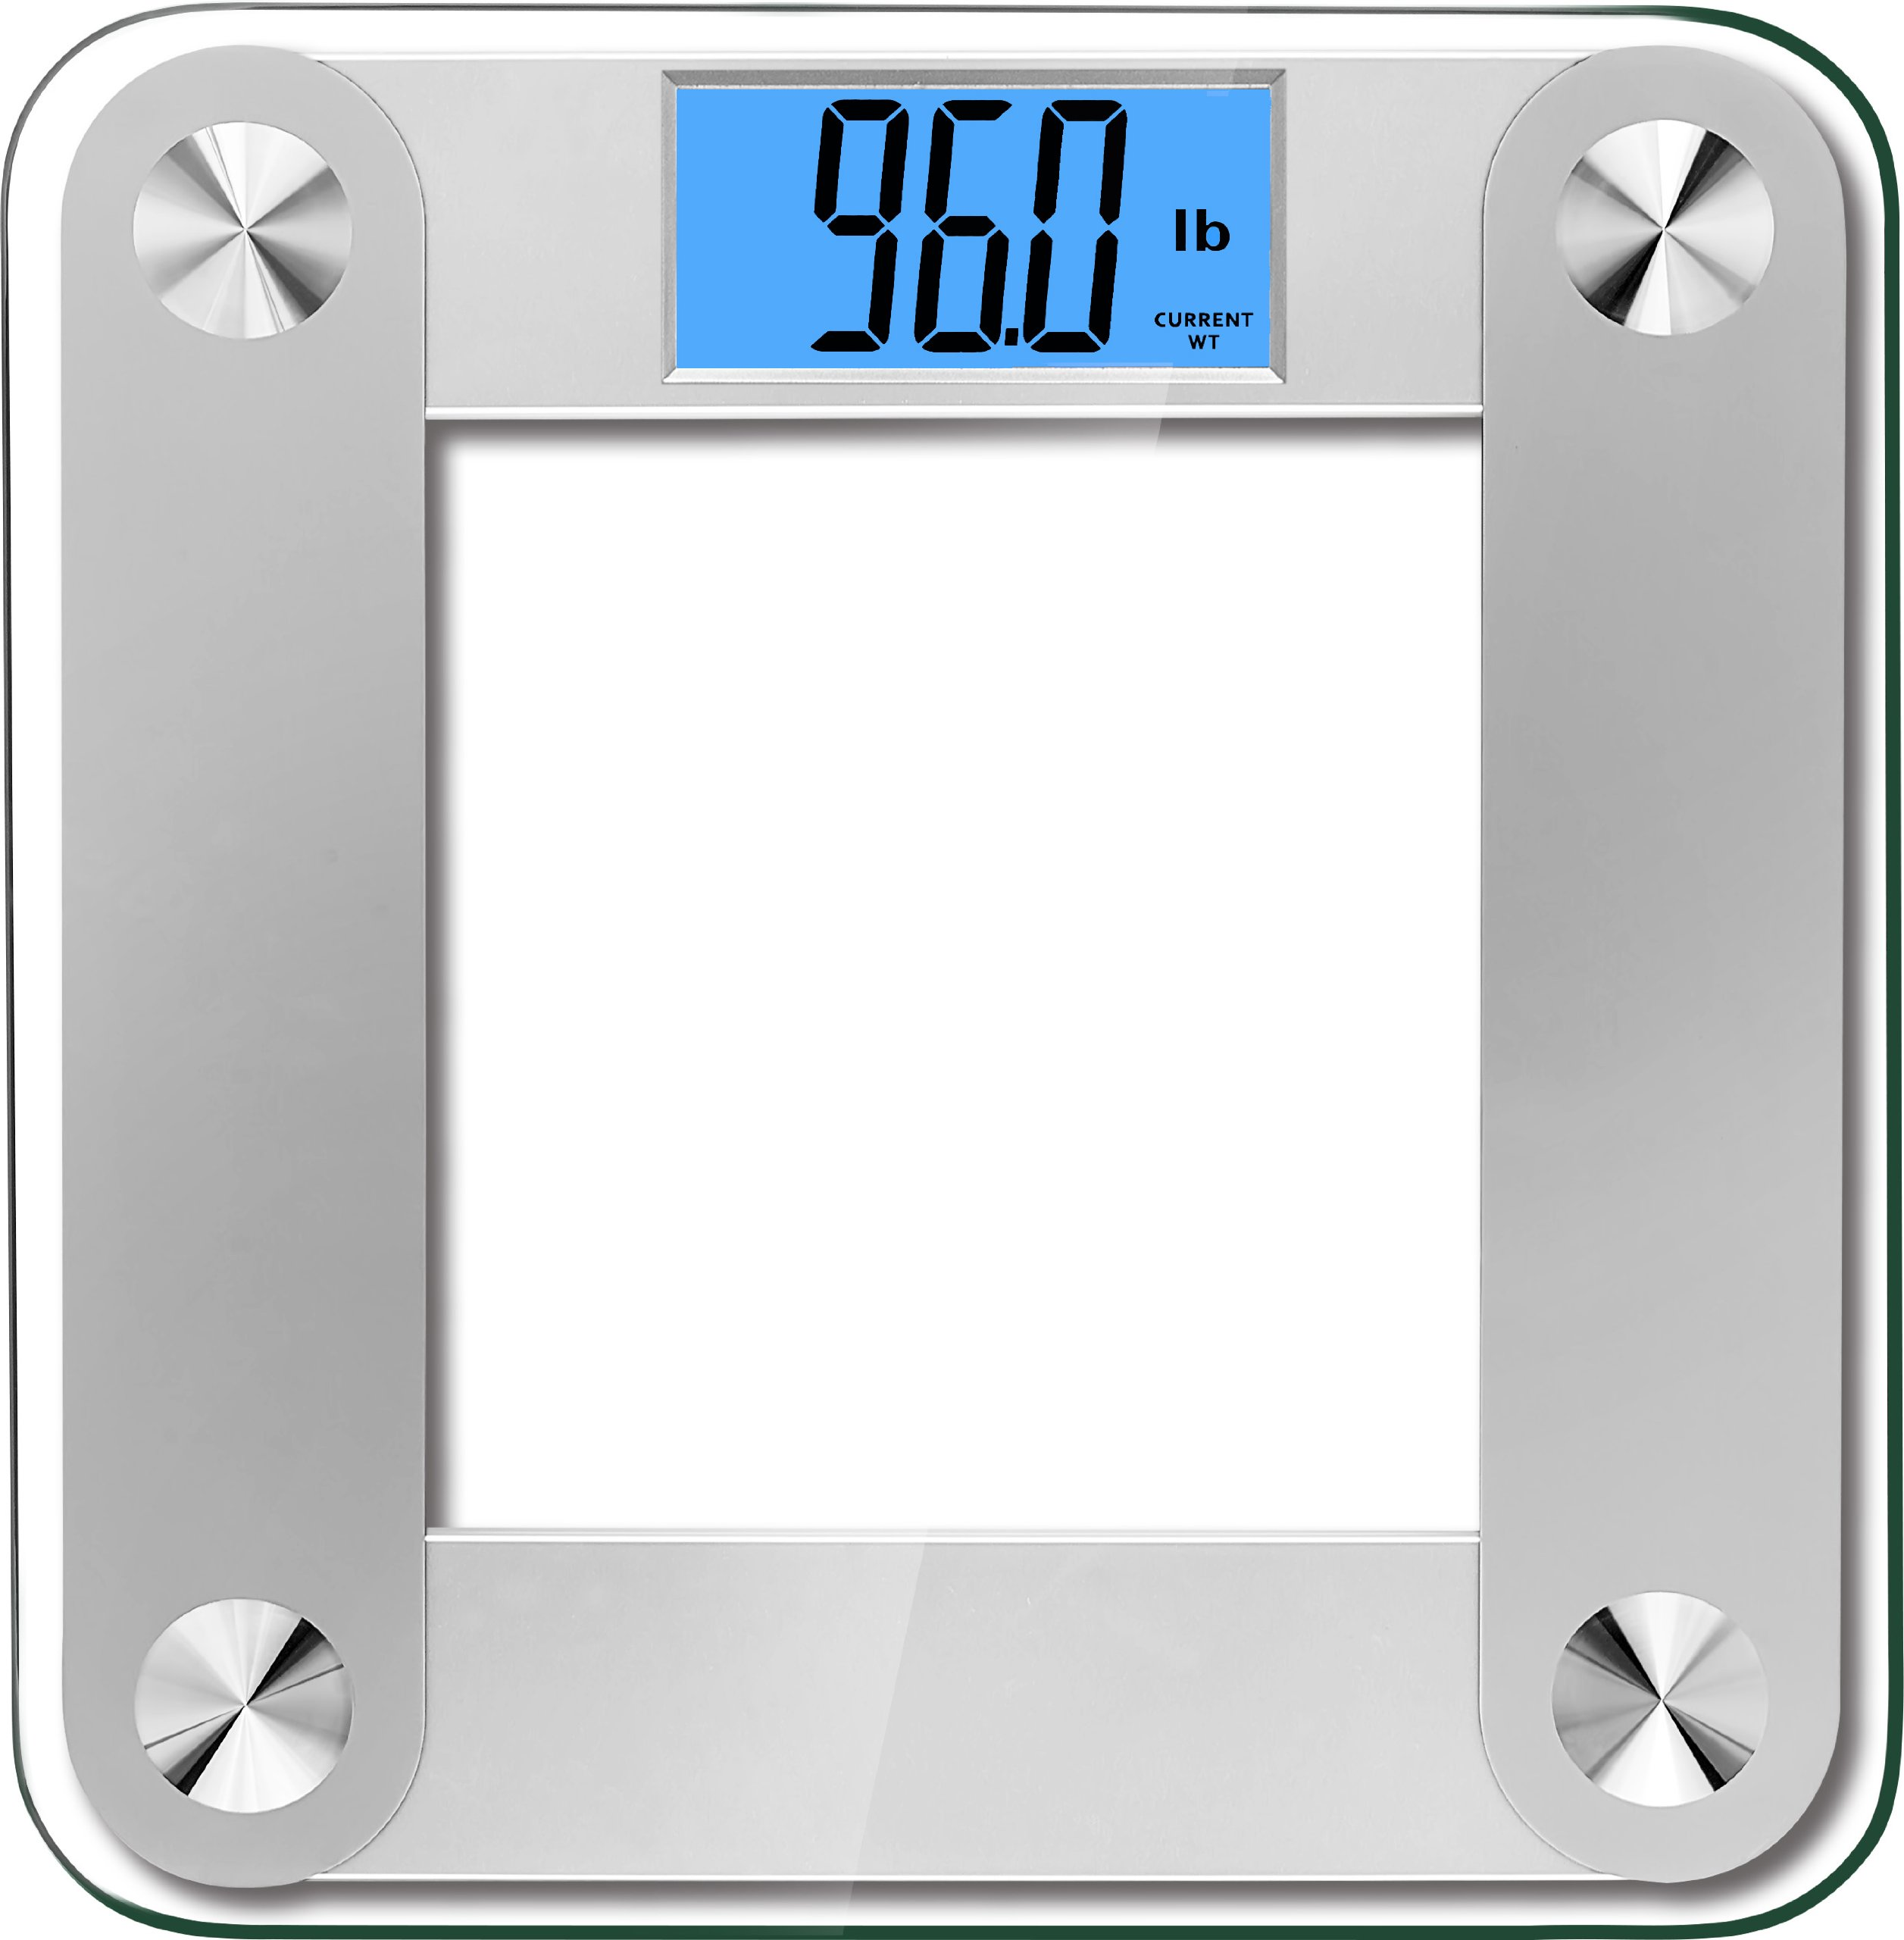 BalanceFrom High Accuracy Premium Digital Bathroom Scale with 3.6'' Extra Large Dual Color Backlight Display and''Smart Step-On'' Technology [NEWEST VERSION] (Silver/Partial)